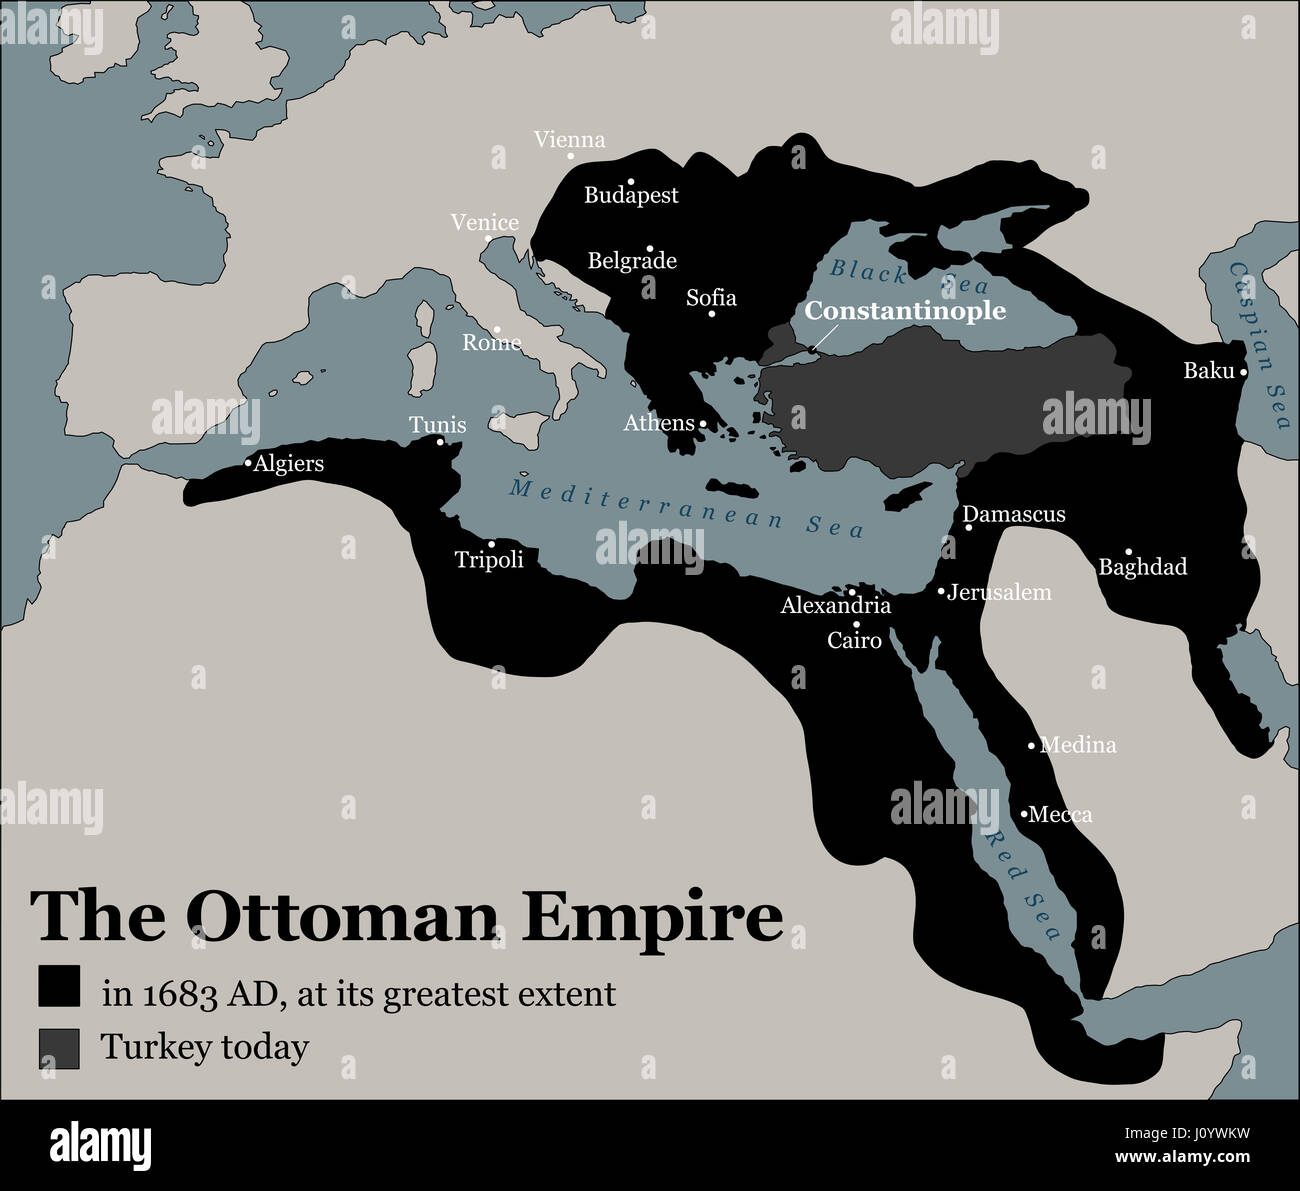 Turkey today and the Ottoman Empire at its greatest extent in 1683 - history map of its territory expansion and military acquisition.